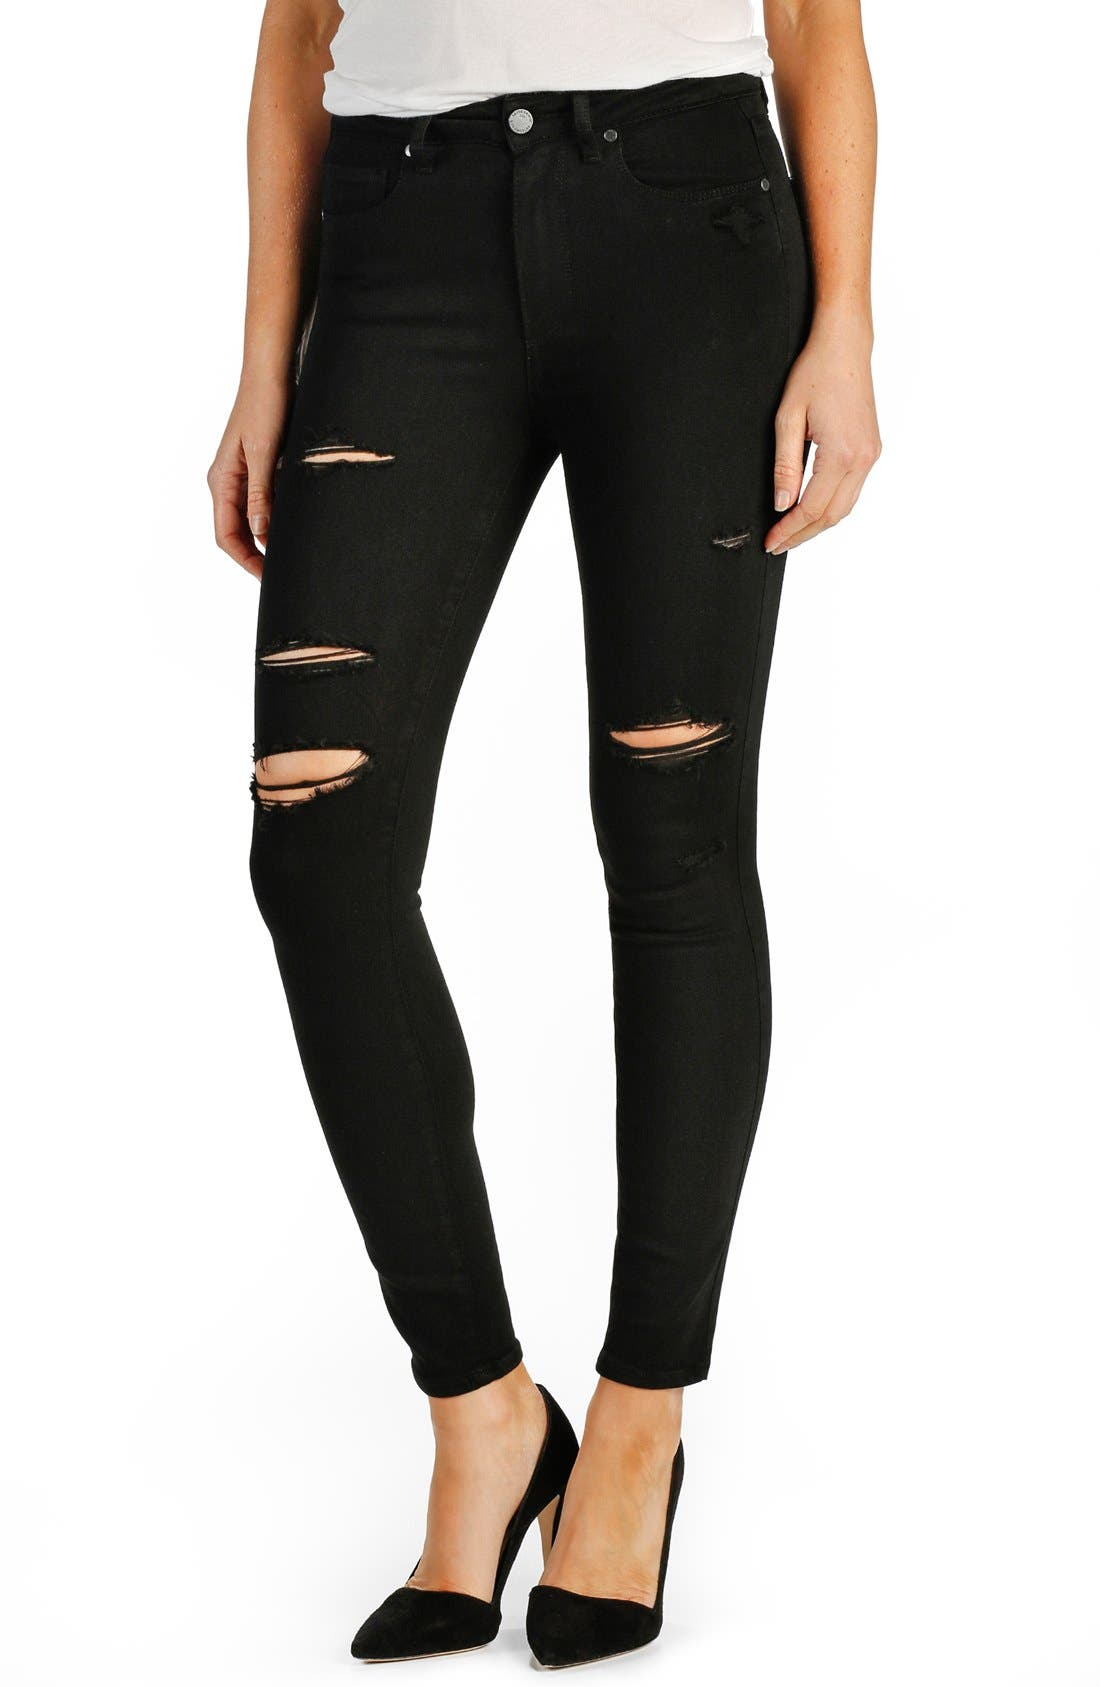 Alternate Image 1 Selected - PAIGE 'Transcend - Hoxton' High Rise Destroyed Ankle Ultra Skinny Jeans (Black Shadow)